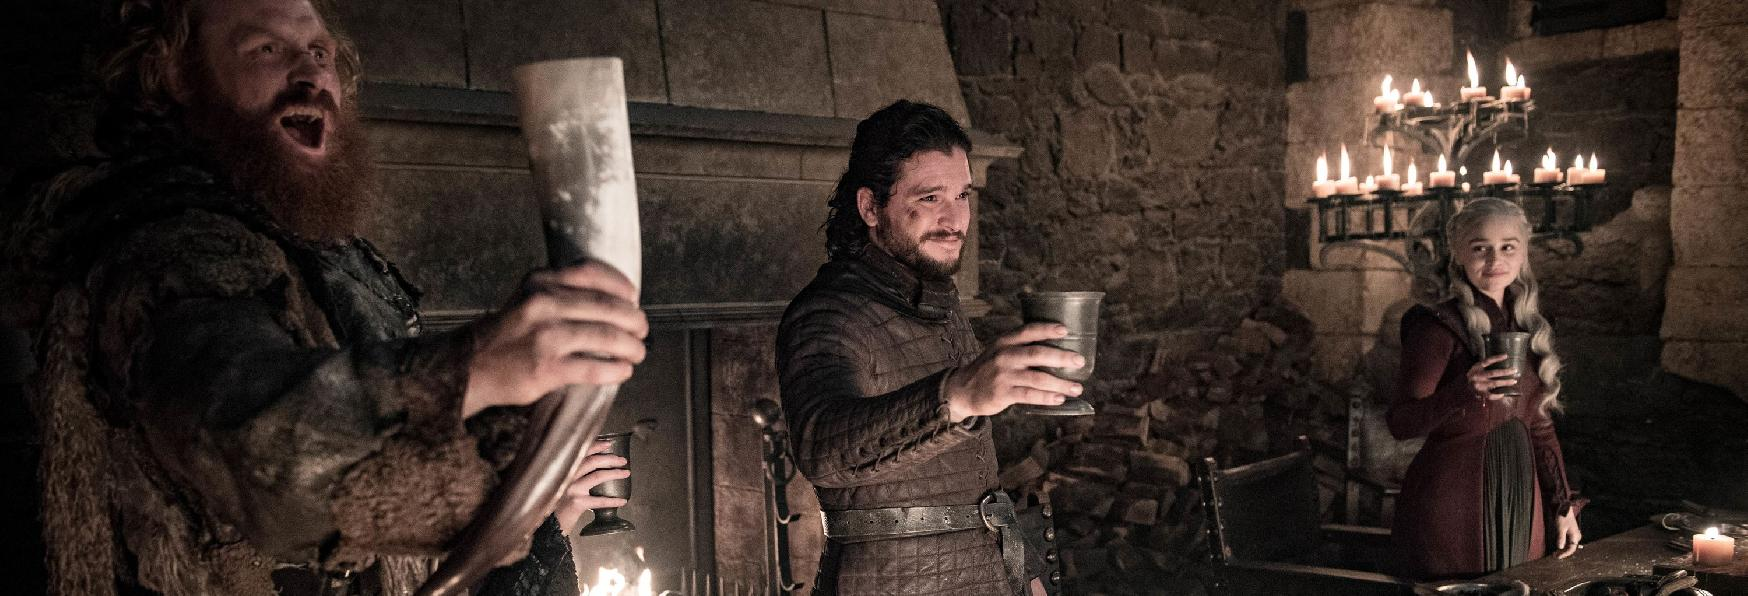 Game of Thrones: in una Scena è comparso per Errore un Bicchiere di Starbucks